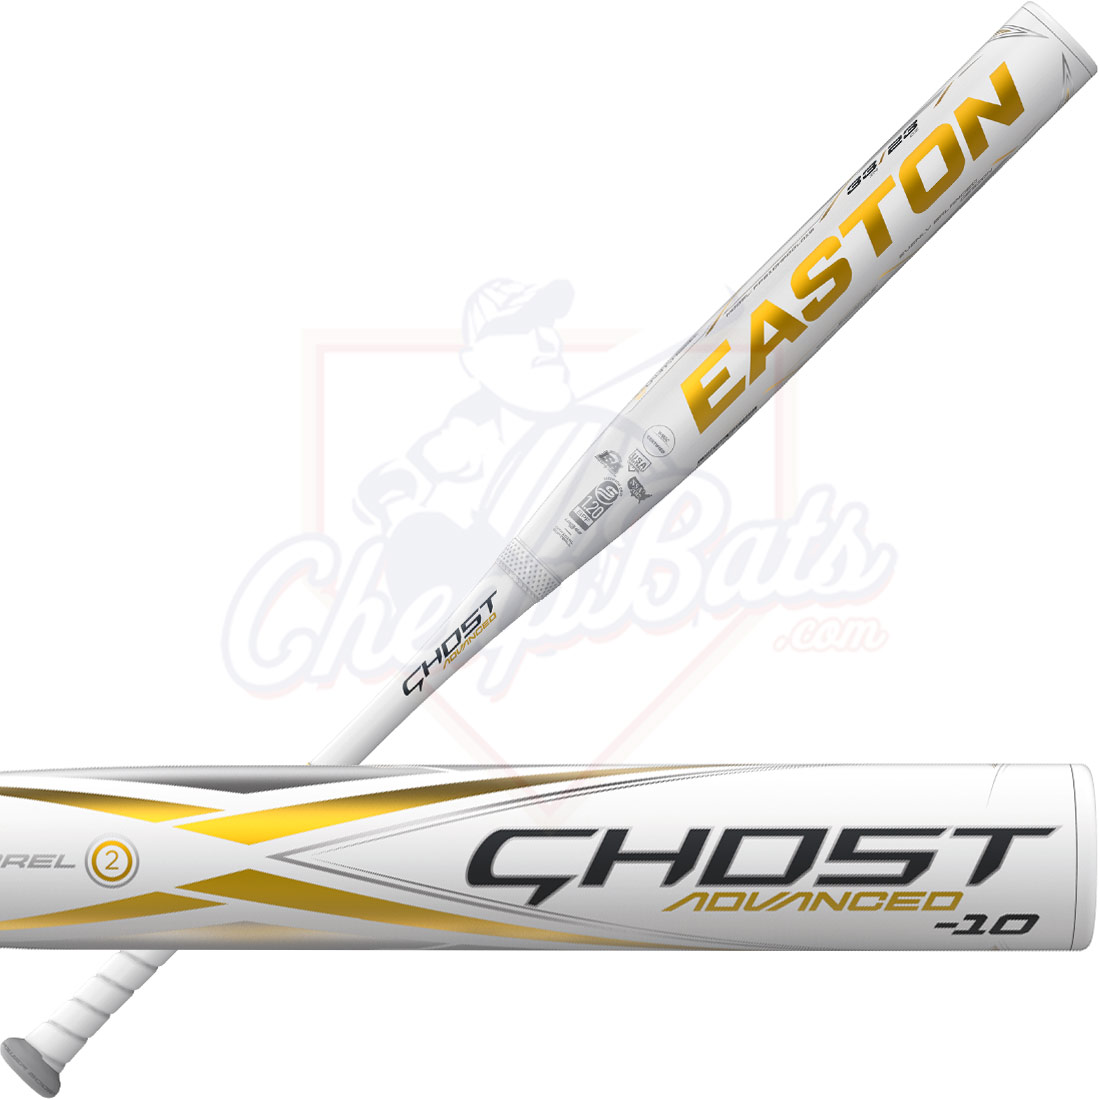 2021 Easton Ghost Advanced Gold Fastpitch Softball Bat -10oz FP21GHADGLD10